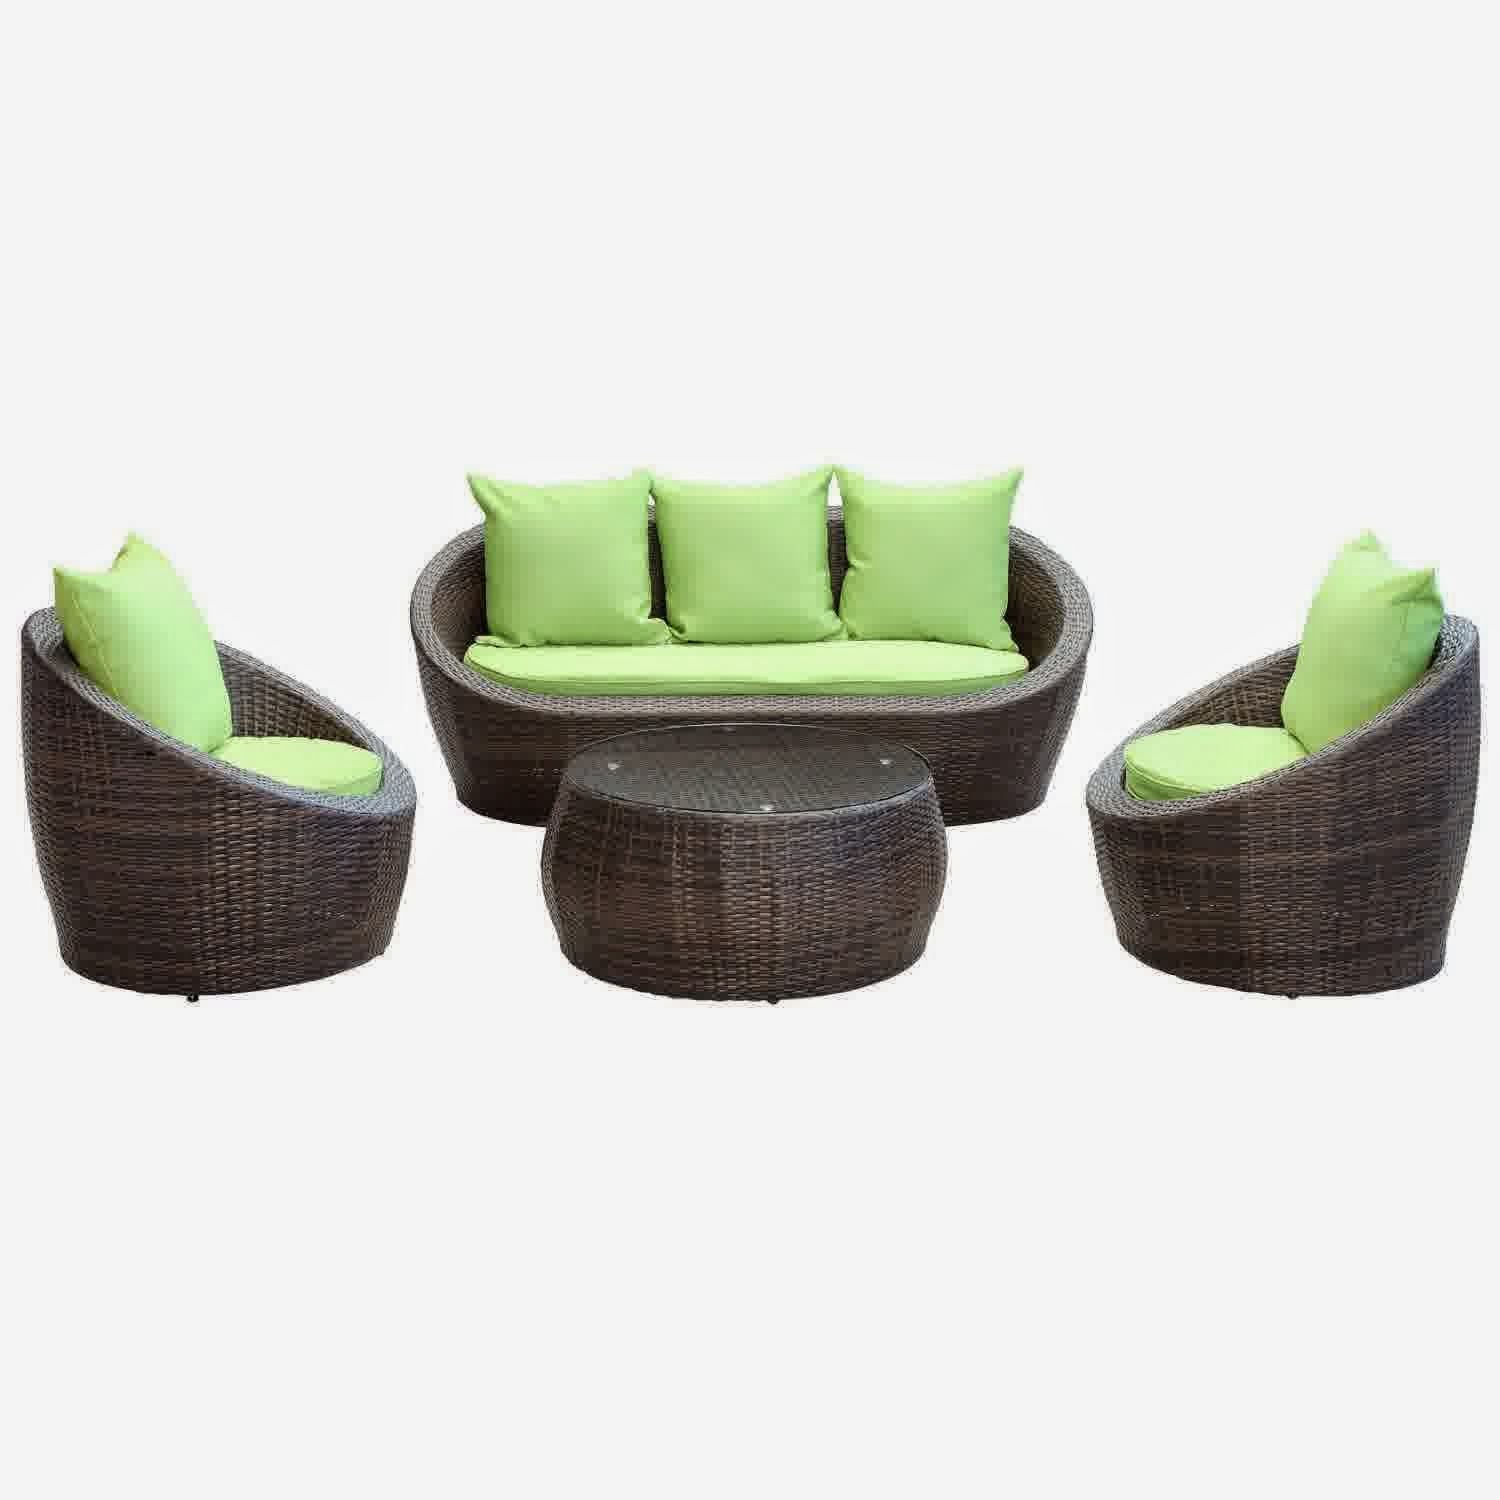 Lexmod Monterey Outdoor Wicker Rattan Sectional Sofa Set Buy Sleeper Discount 51 For Avo Patio 4 Piece